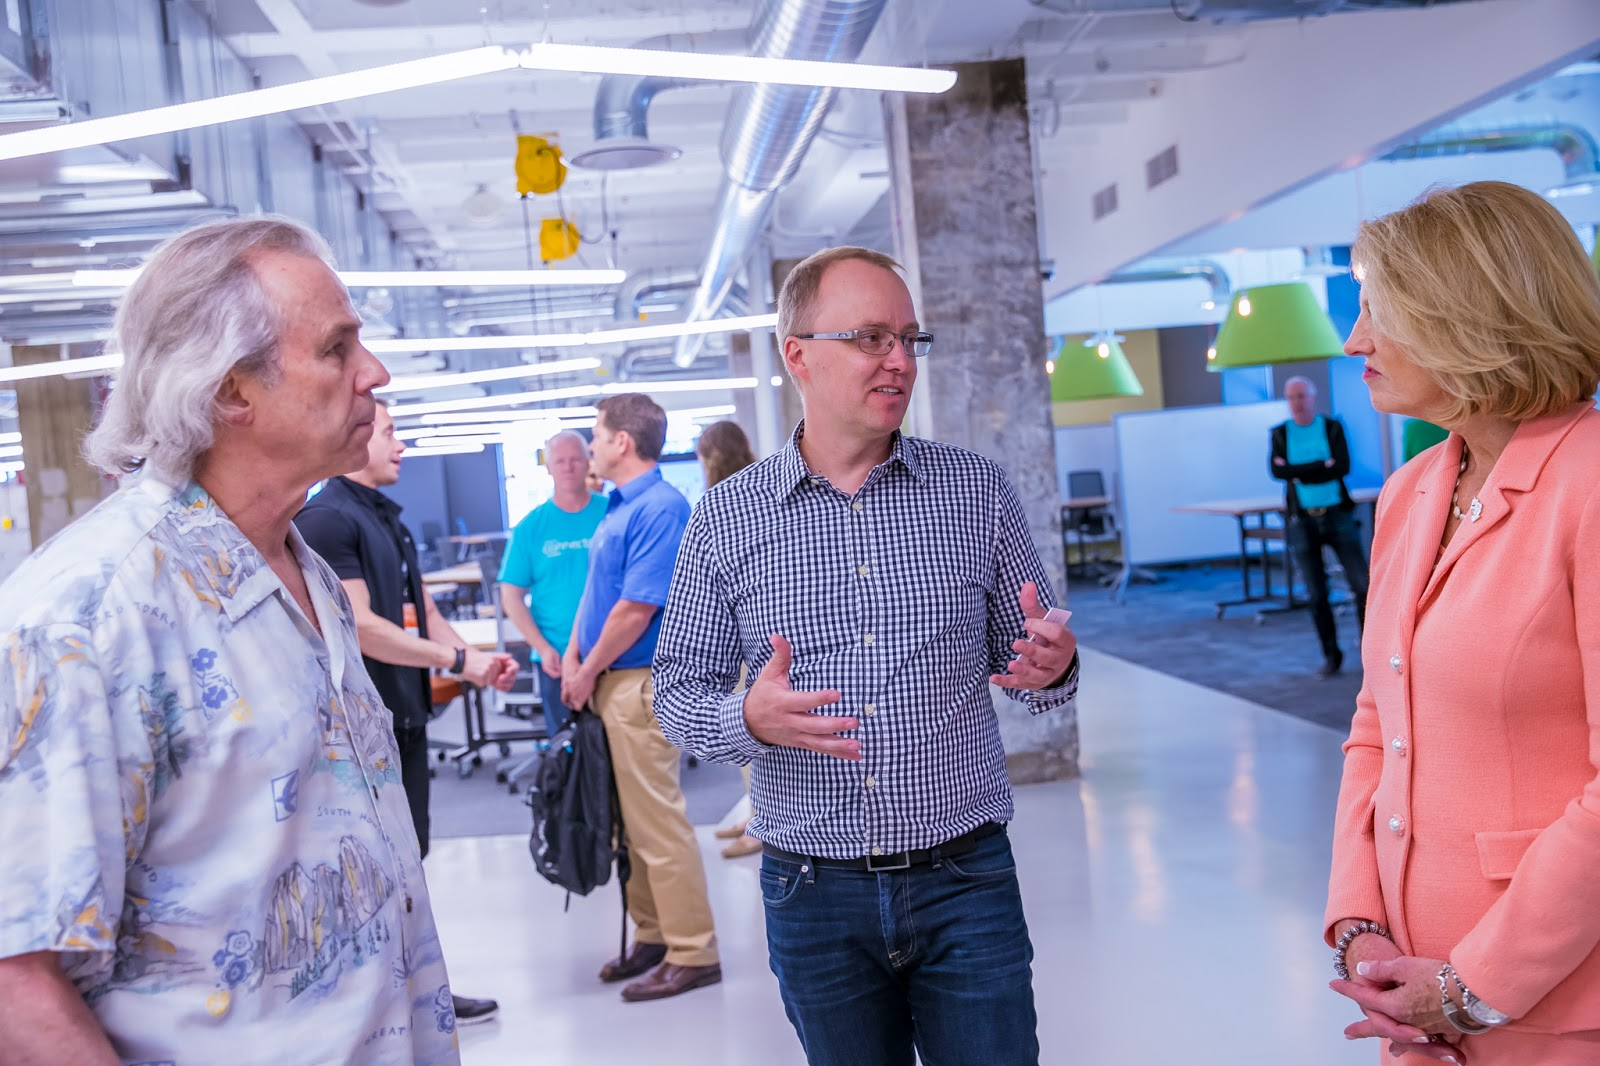 munger mature personals Girl fucks guy dildo xxx tube can give you the incredible thrill that you are looking for on the 24/7 basis this huge free girl fucks guy sex tube has the hottest girl fucks guy porn movies.